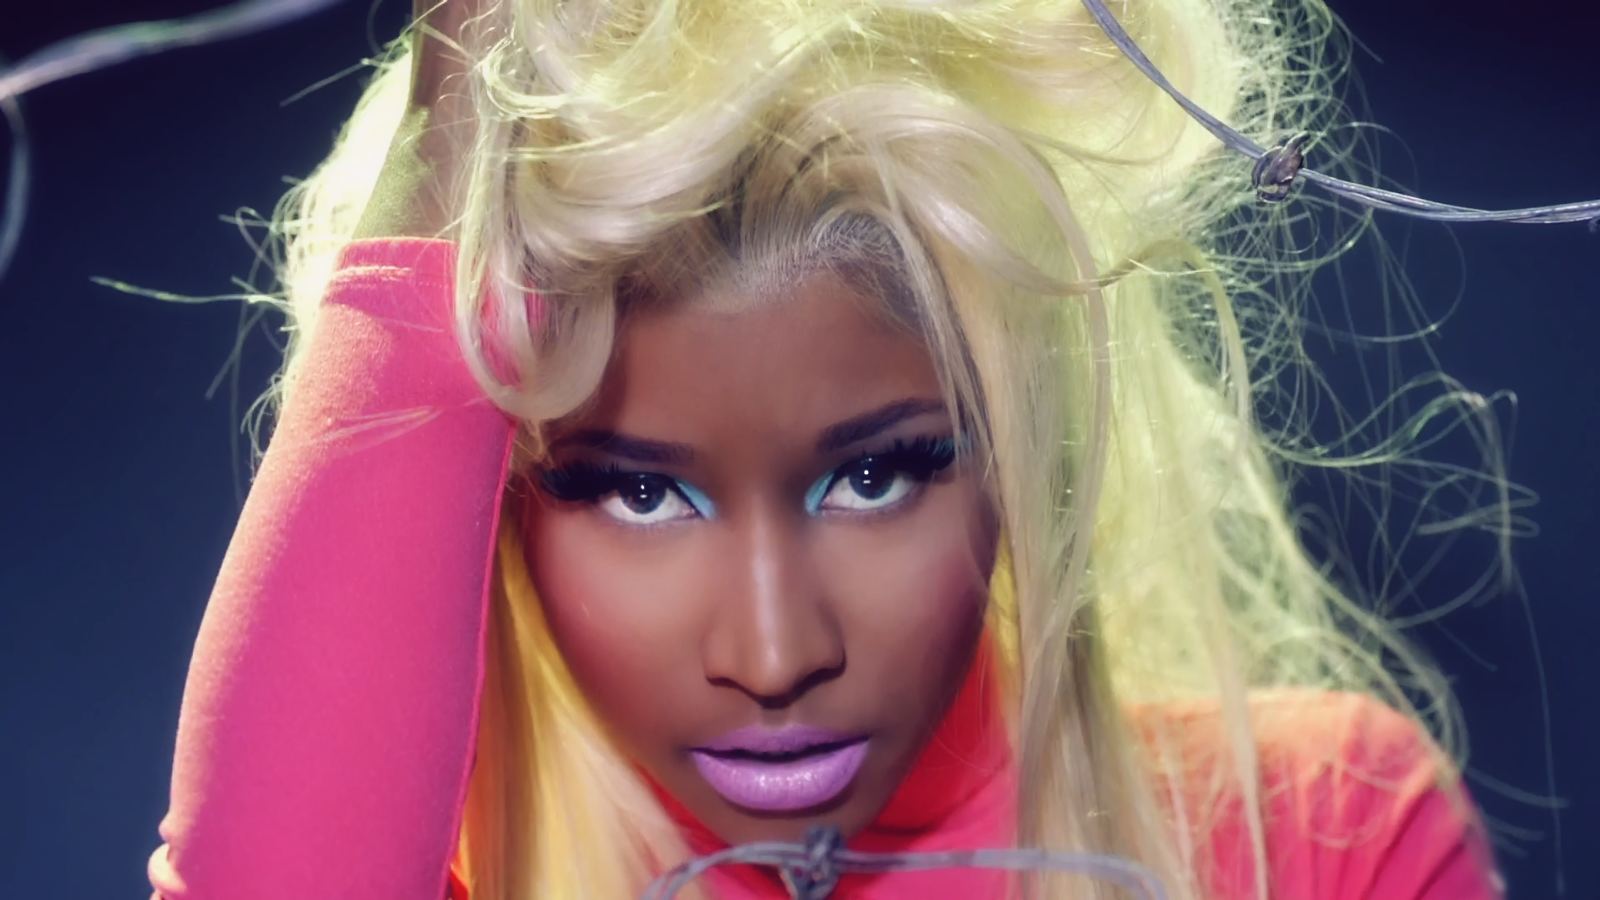 Download Nicki Minaj Look background for your phone iPhone android 1600x900